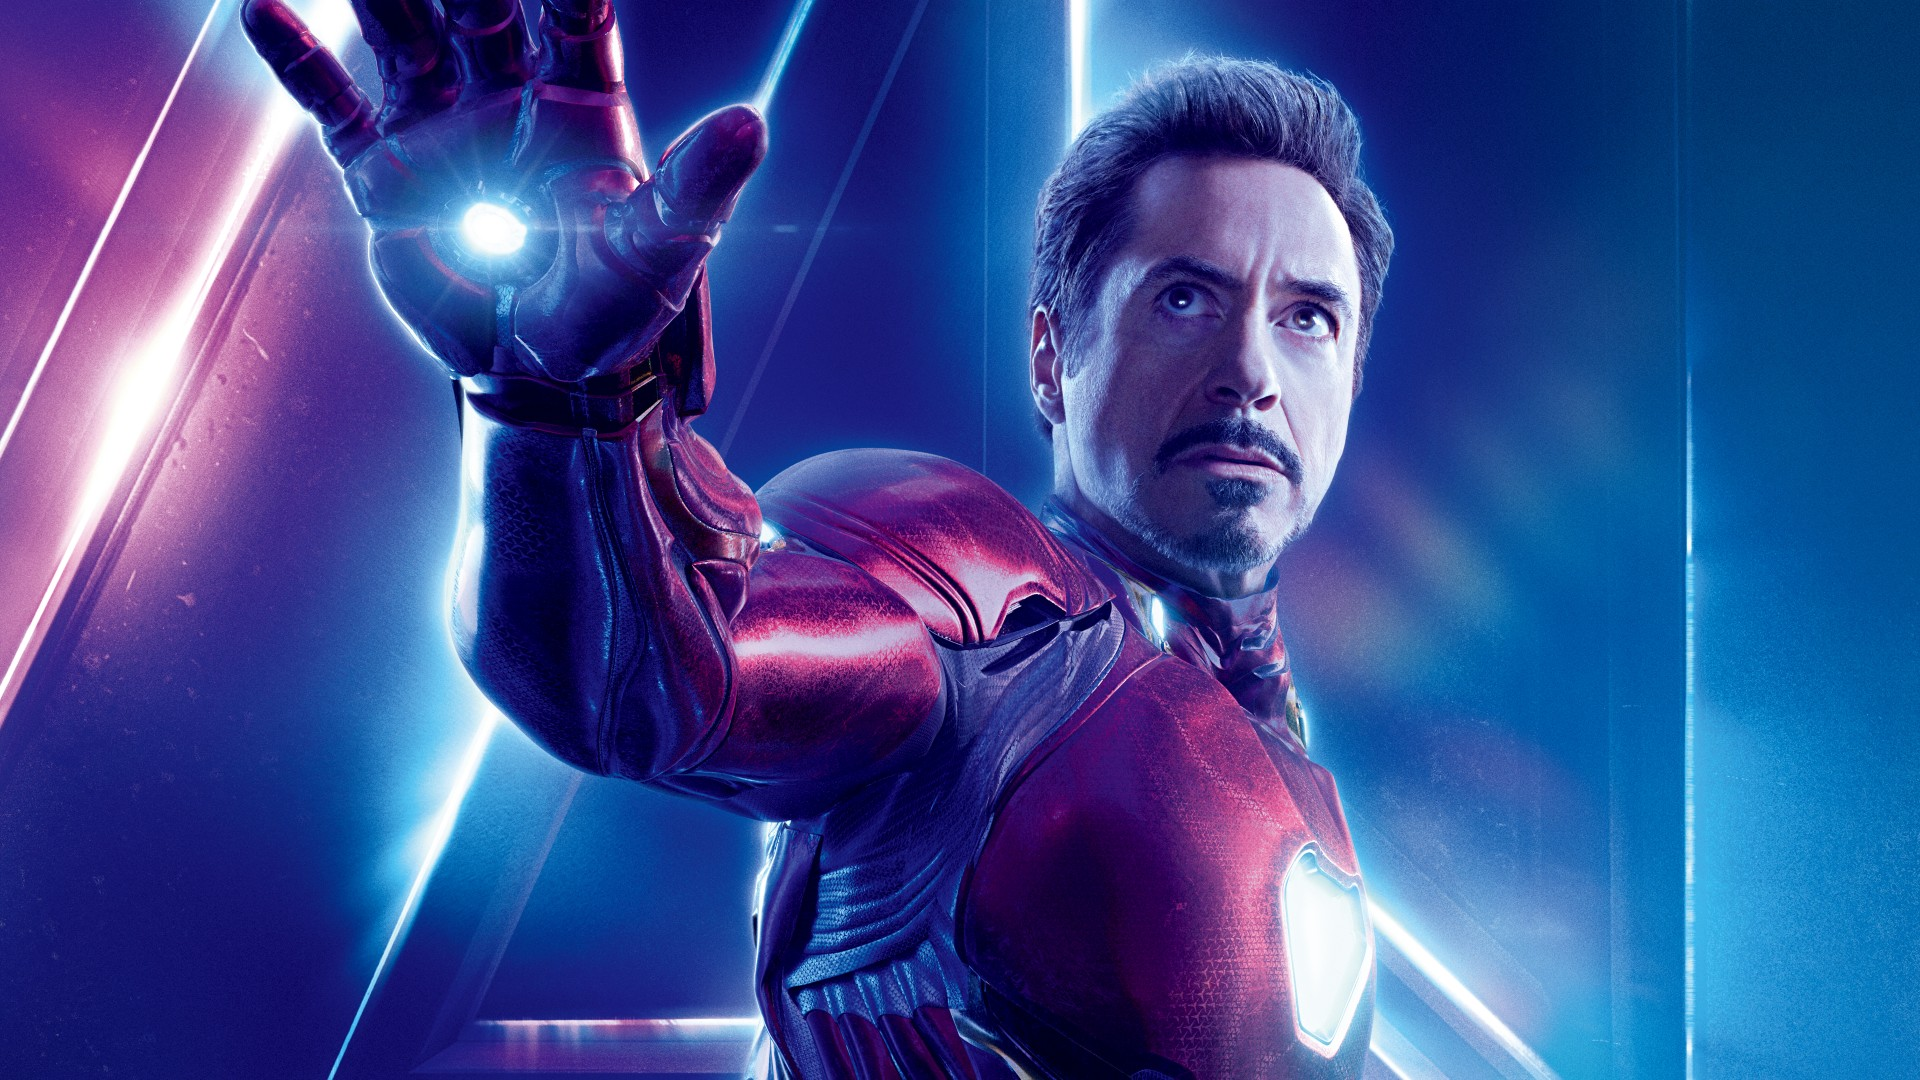 Iron Man in Avengers Infinity War HD Wallpaper   Wallpaper Stream 1920x1080